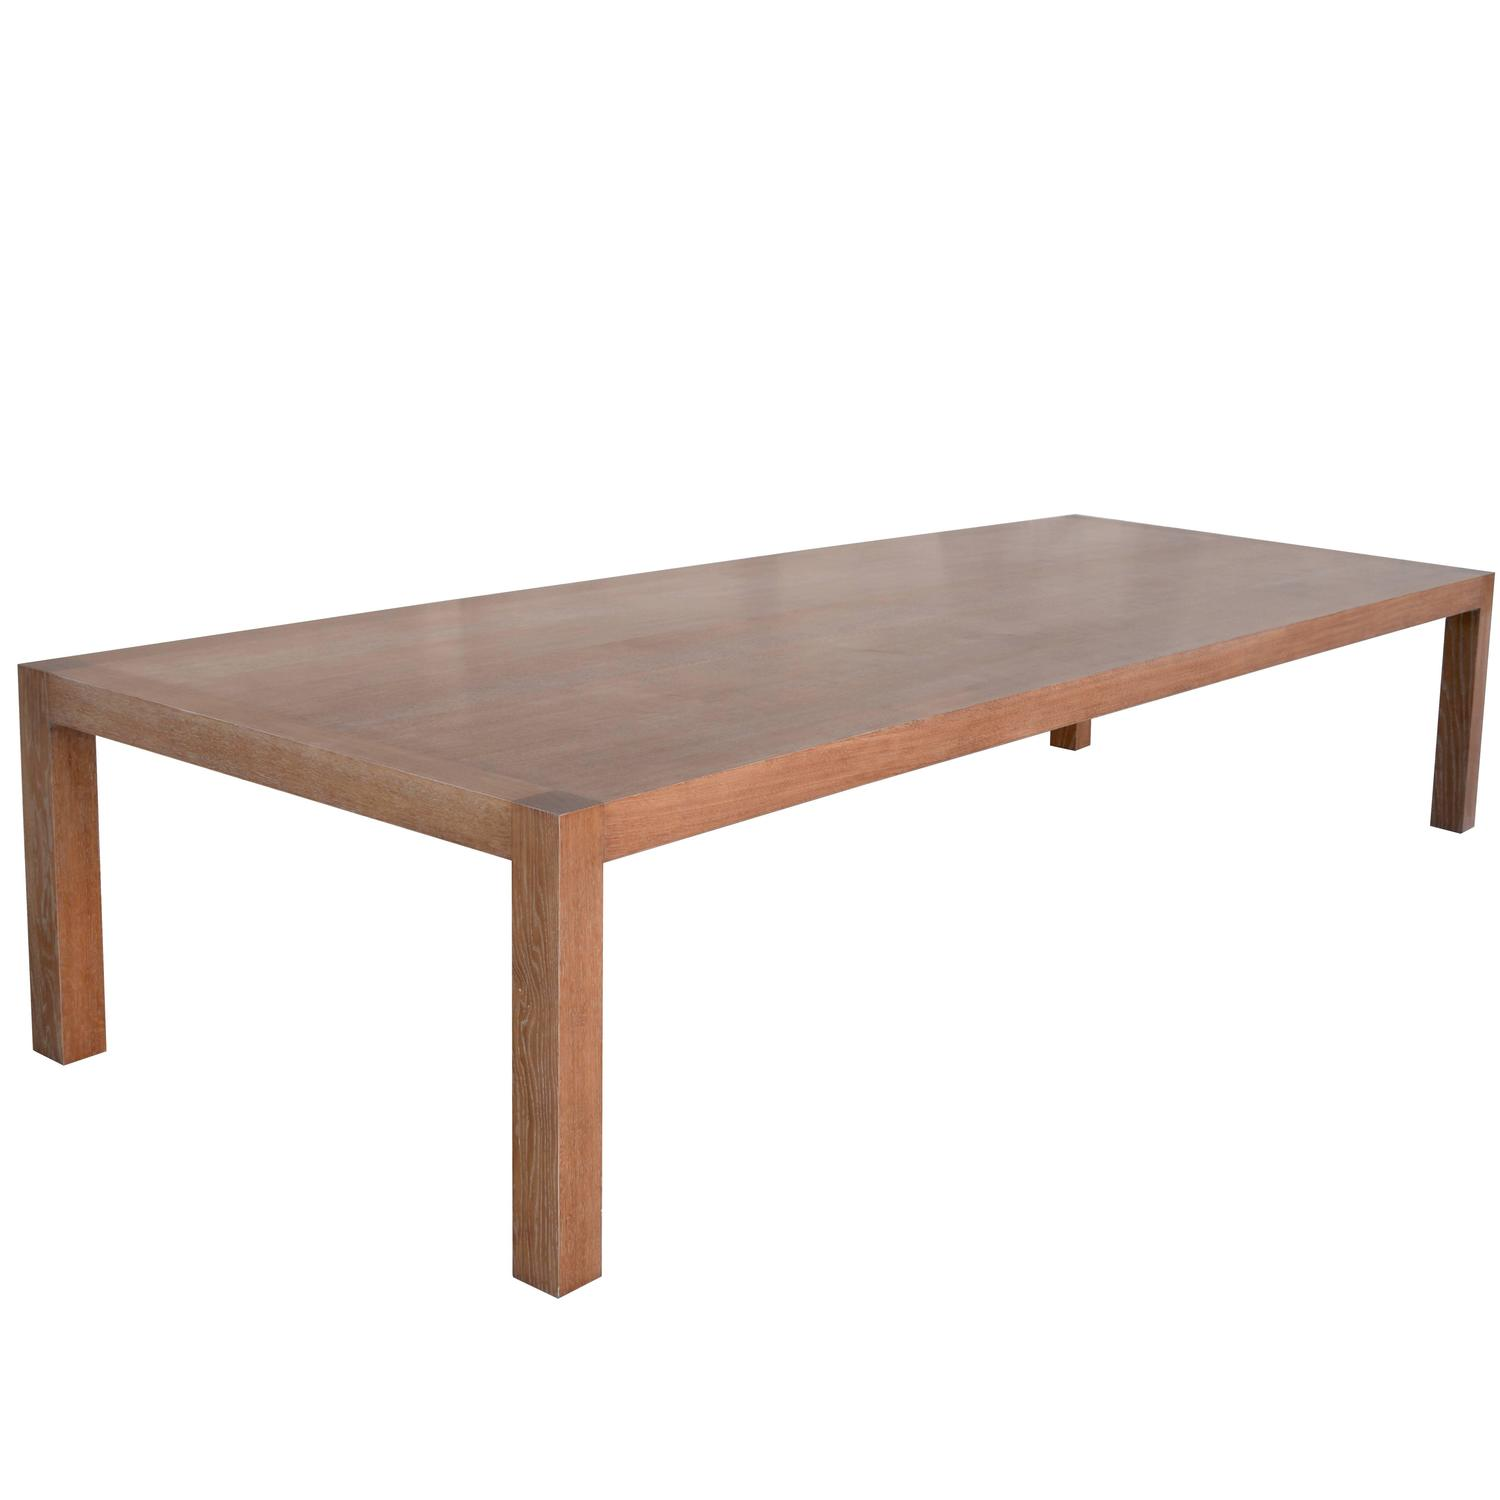 square pine parsons portfolio with style lorimer table workshop category benches archives